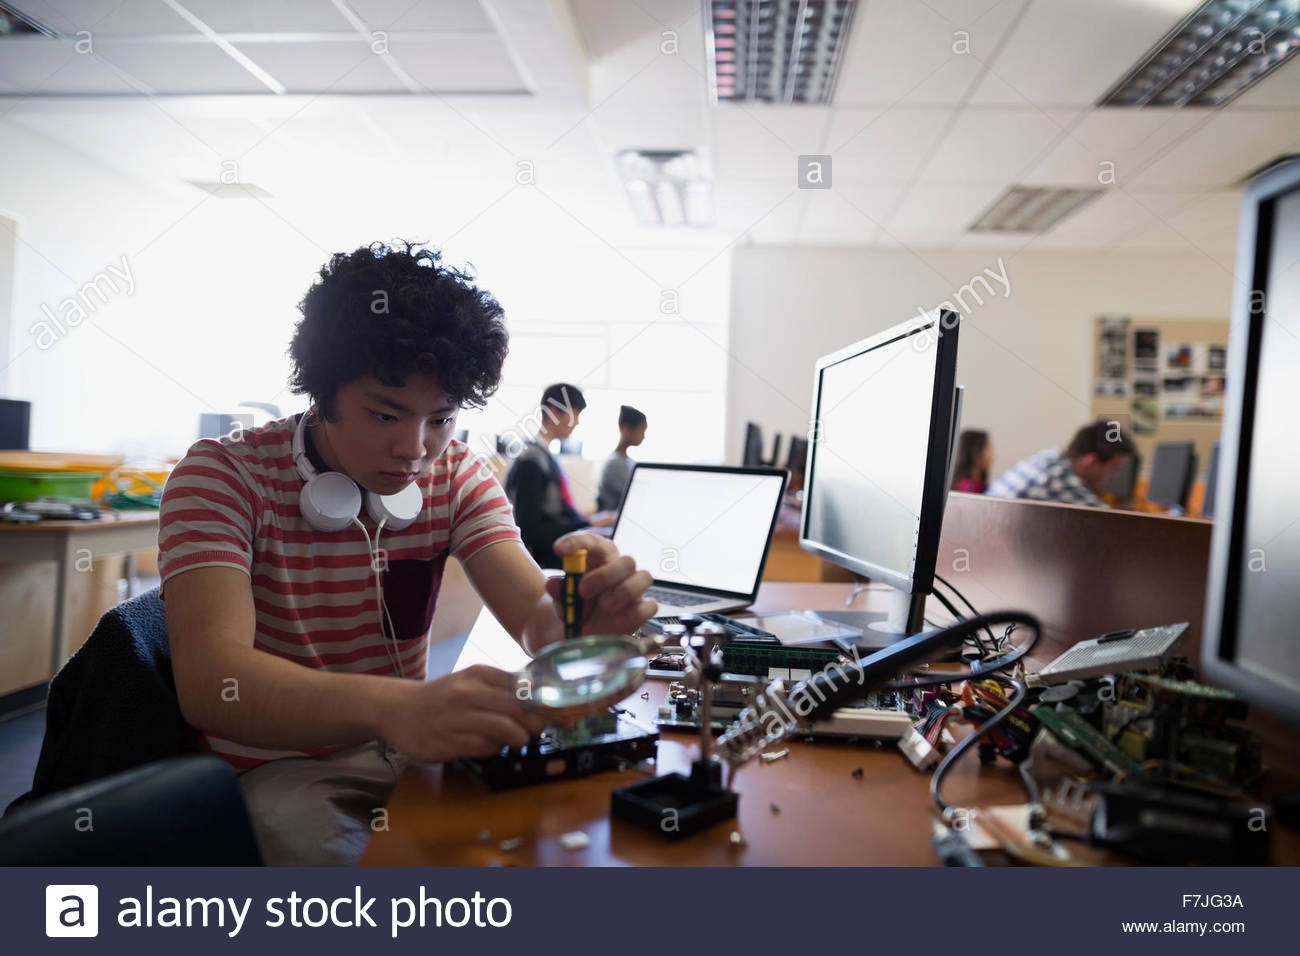 Focused high school student fixing computer part - Stock Image